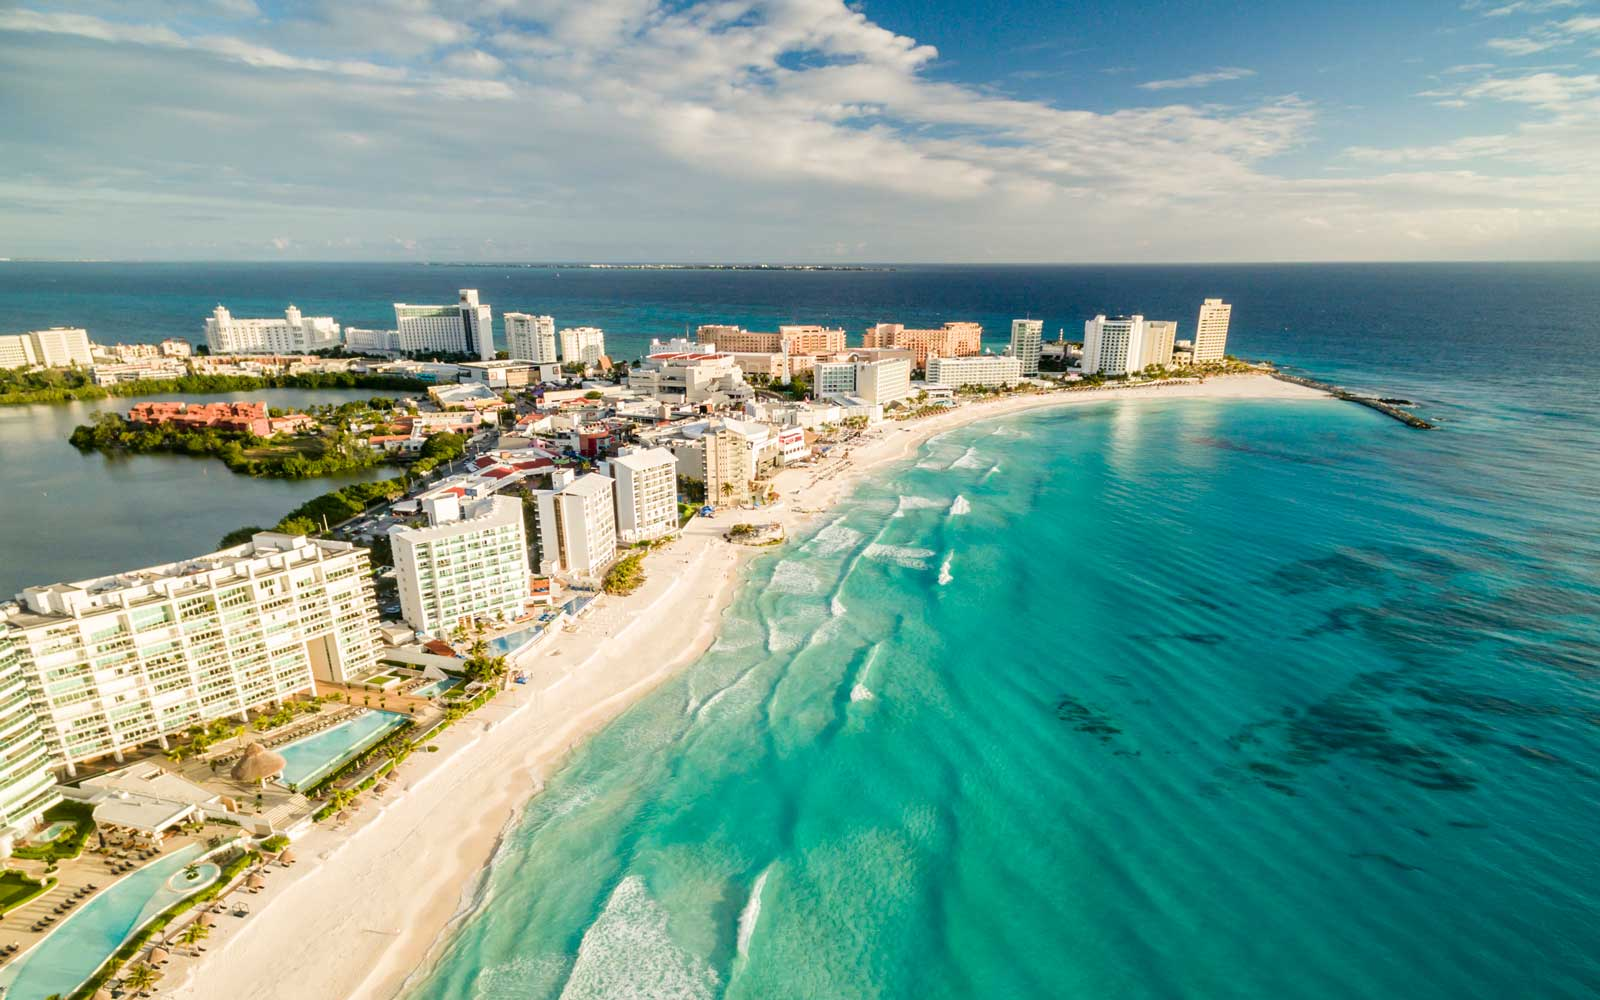 Aerial View of Caribbean Coastline in Cancun